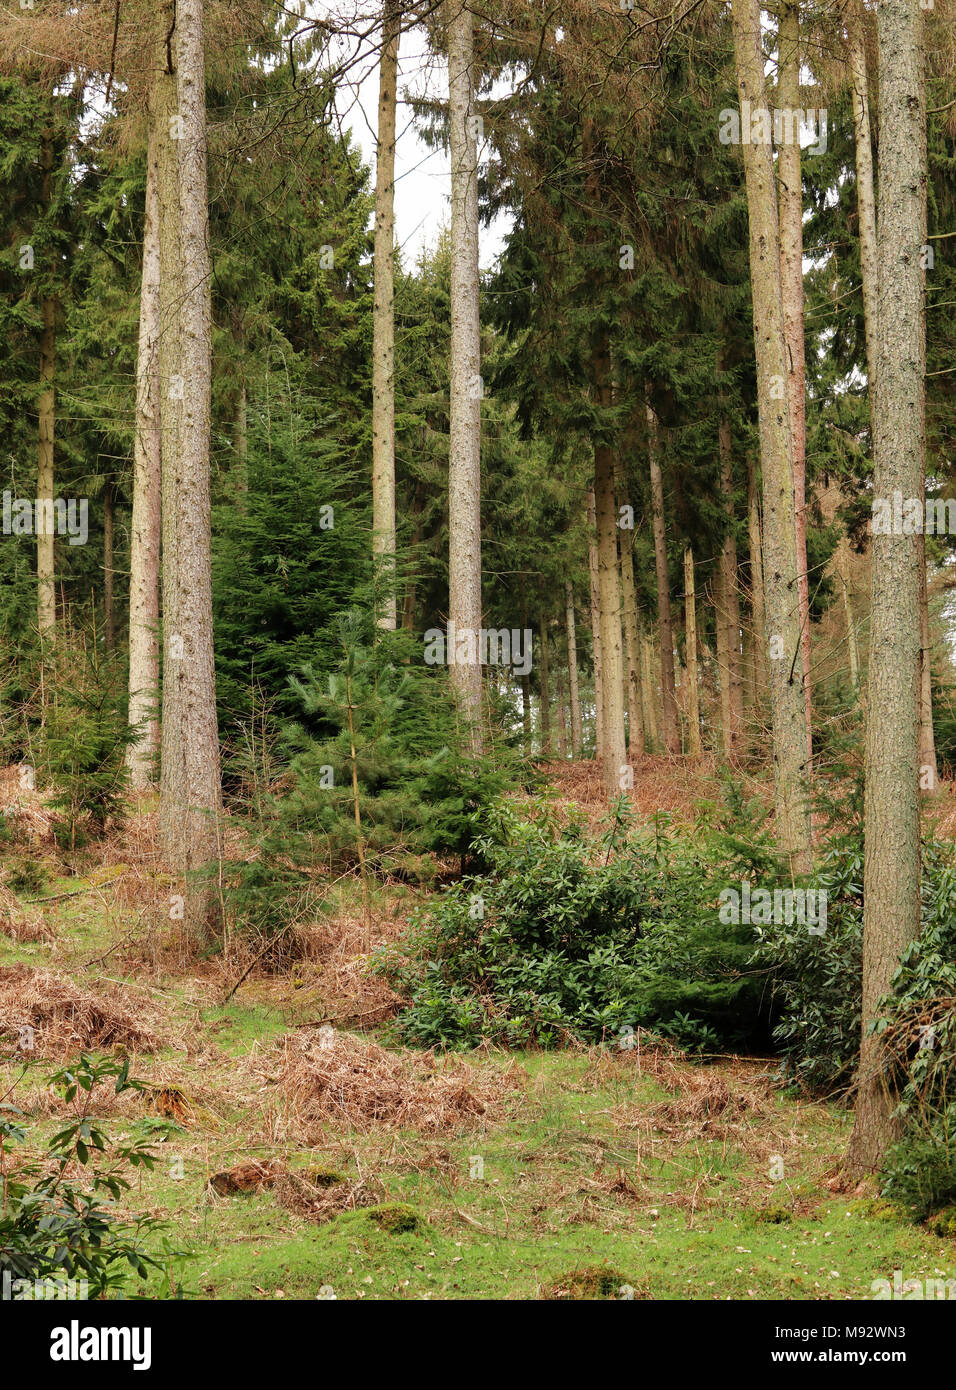 English Woodland scene in the Chiltern Hills with pine trees growing on the hillside - Stock Image